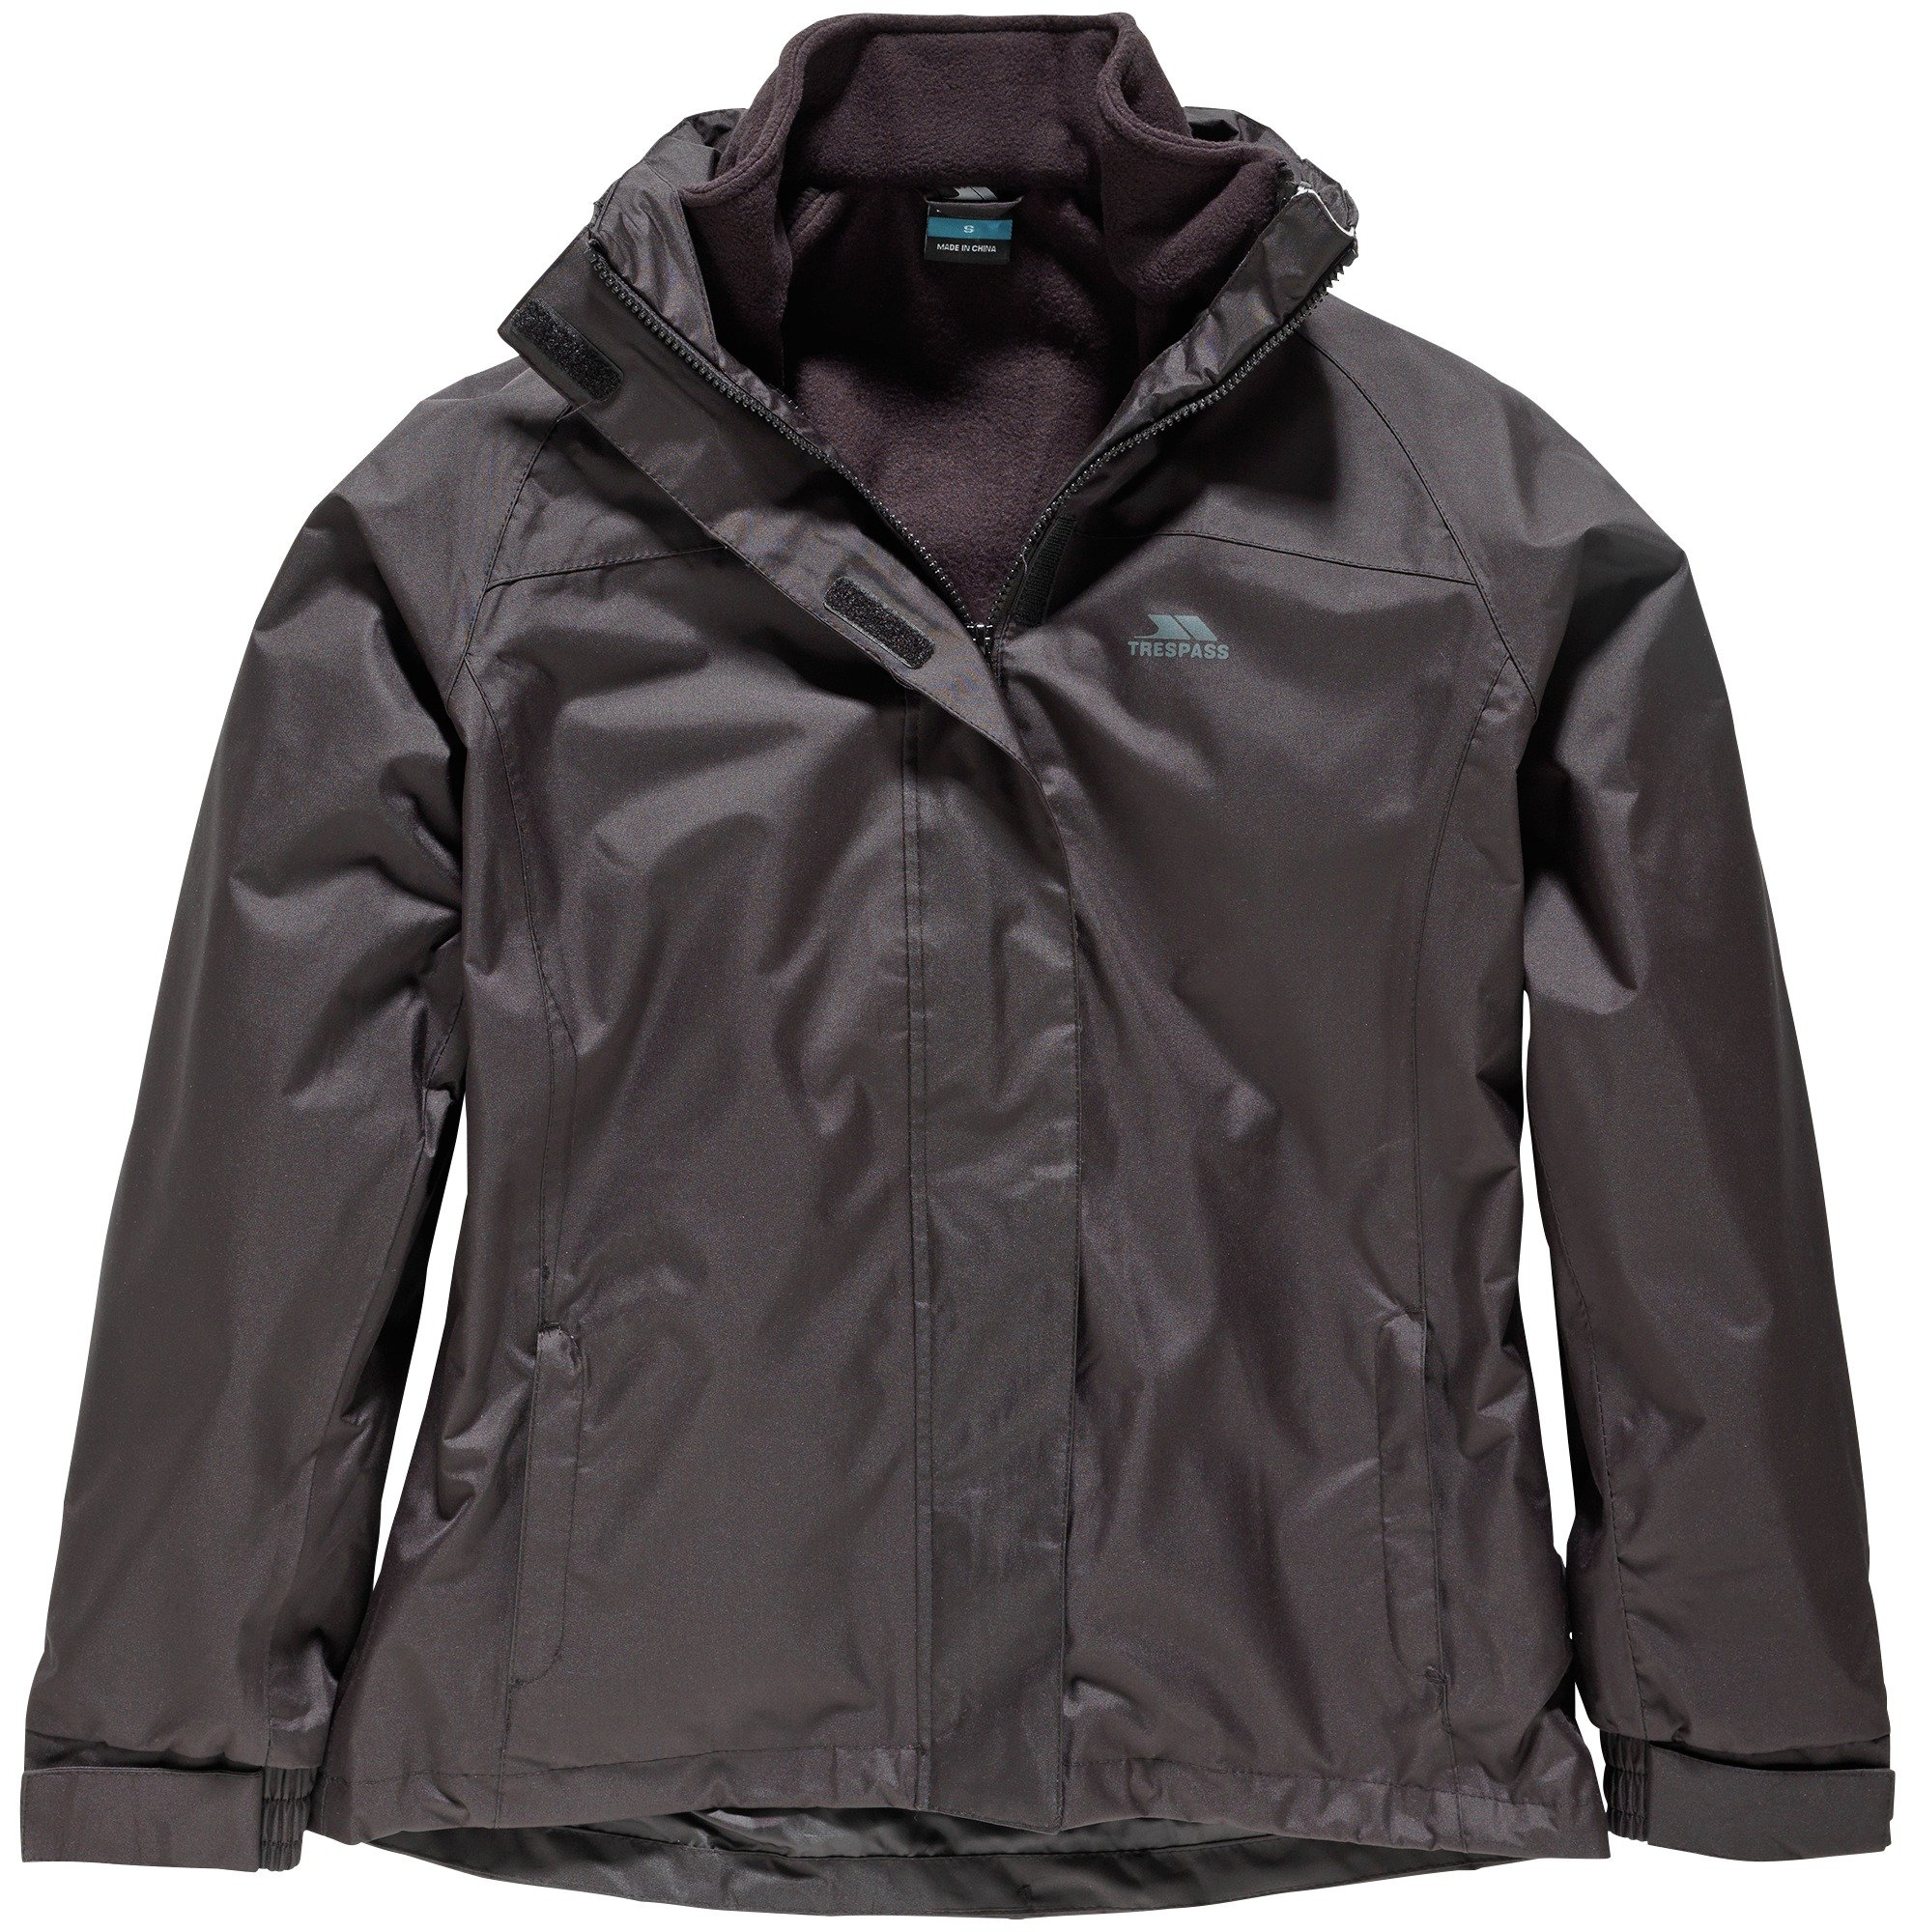 Image of Trespass 3 in 1 Jacket - Small